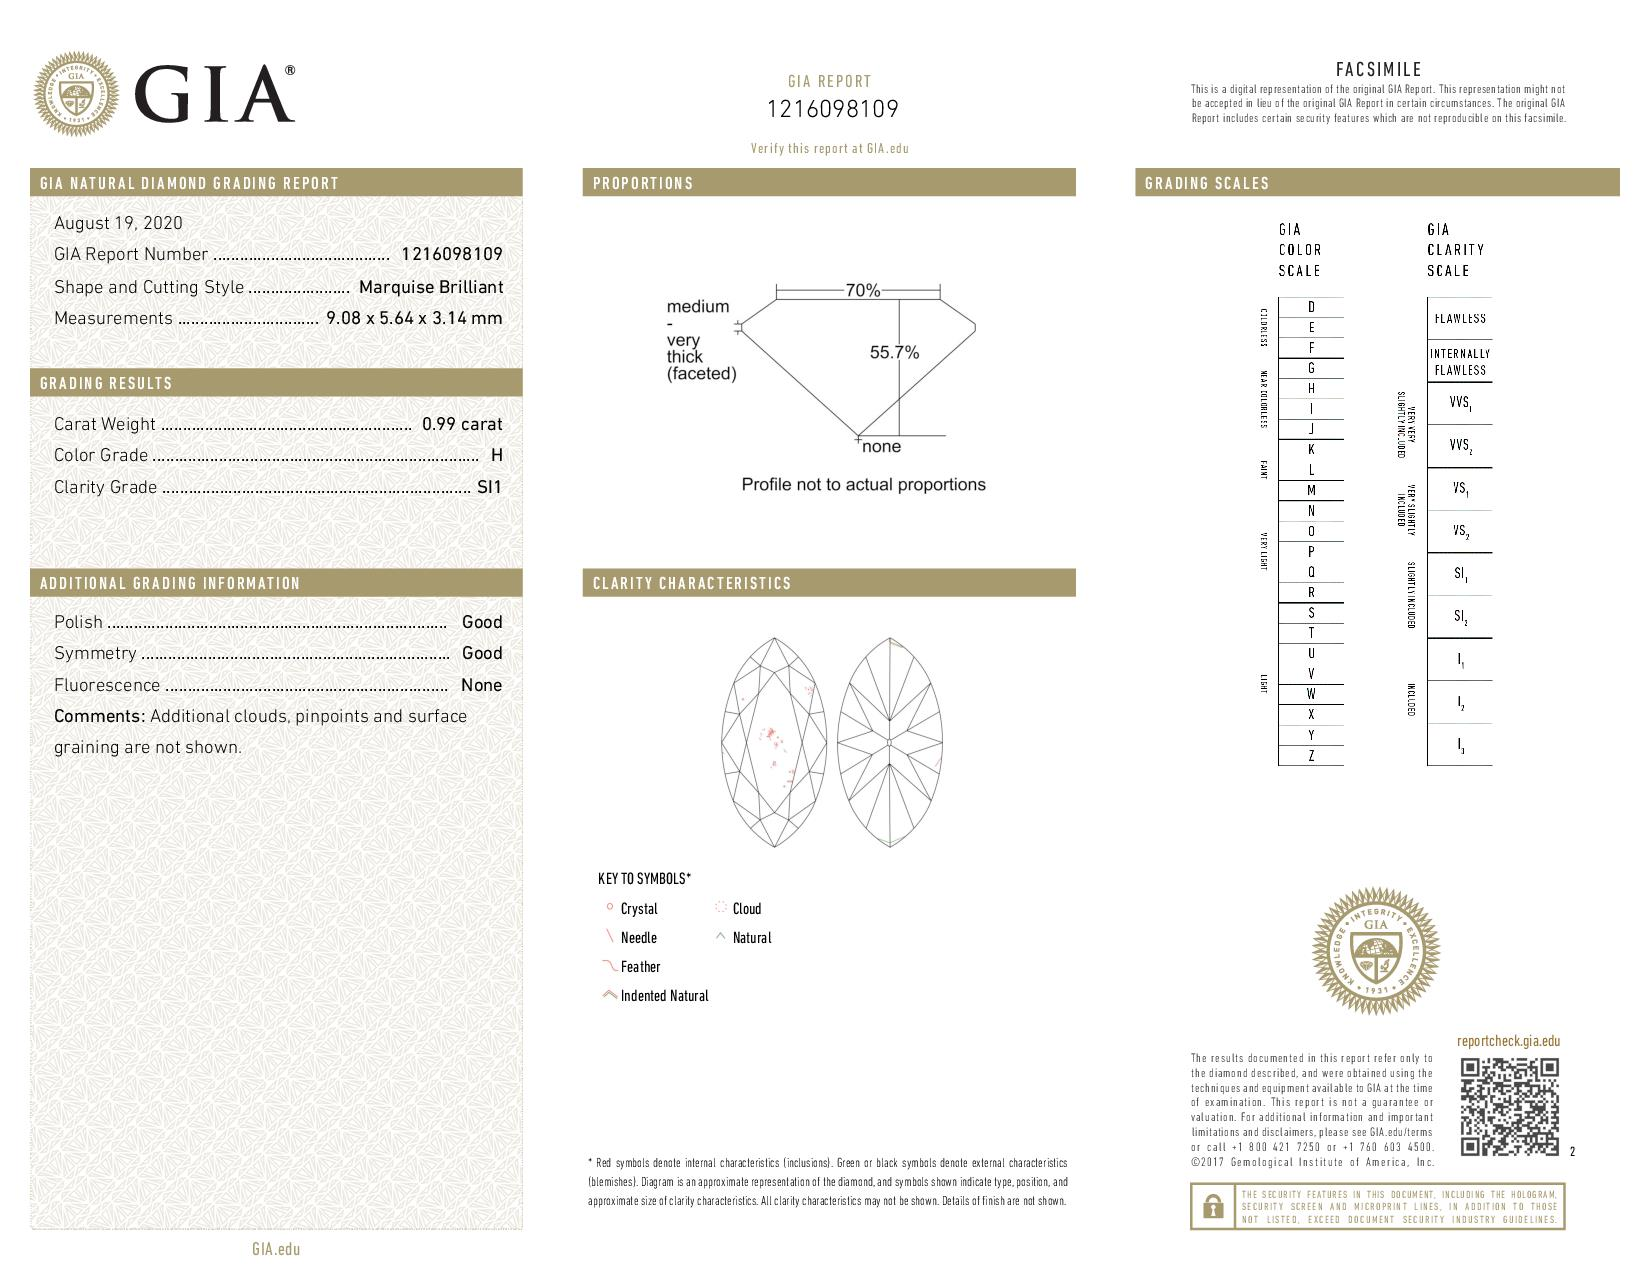 This is a 0.99 carat marquise shape, H color, SI1 clarity natural diamond accompanied by a GIA grading report.